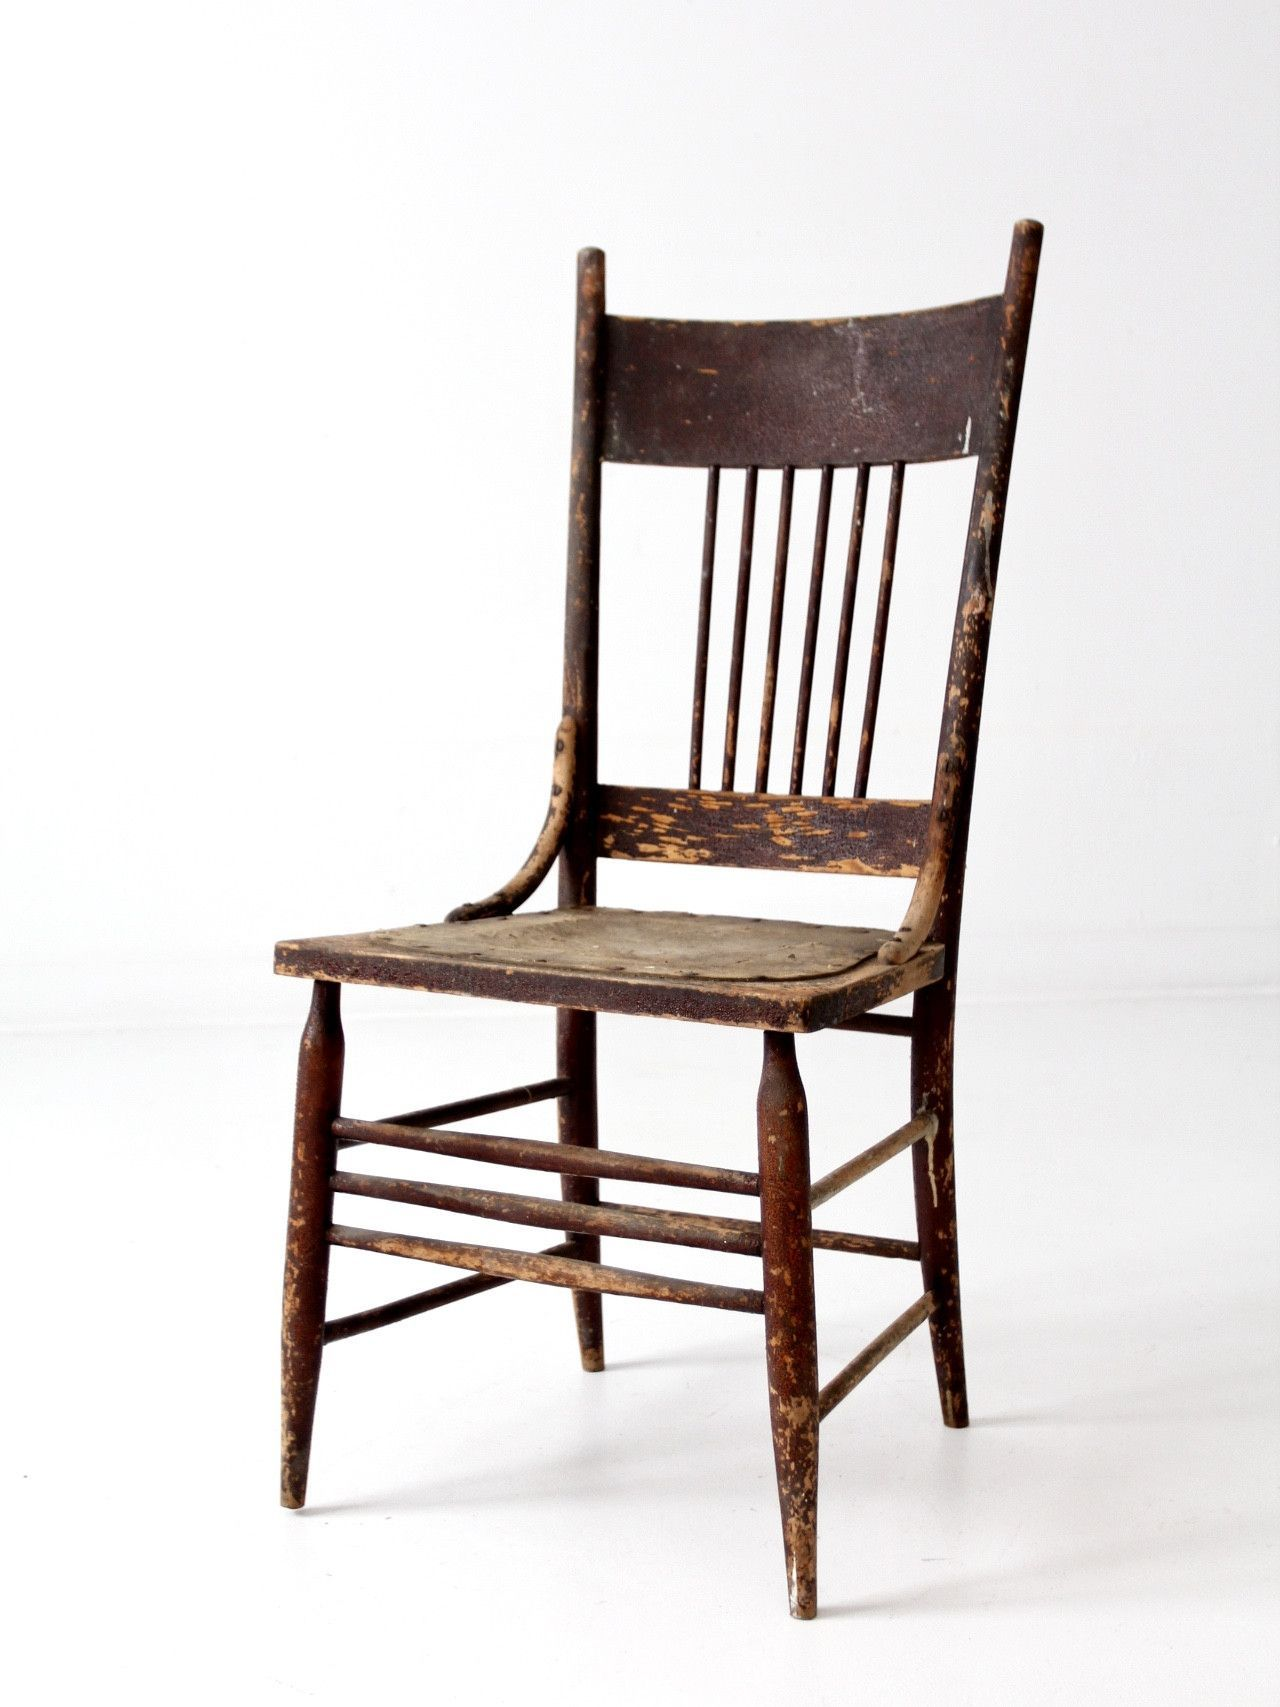 Leather And Wood Chair Antique Spindle Back Chair With Pressed Leather Seat Chairs